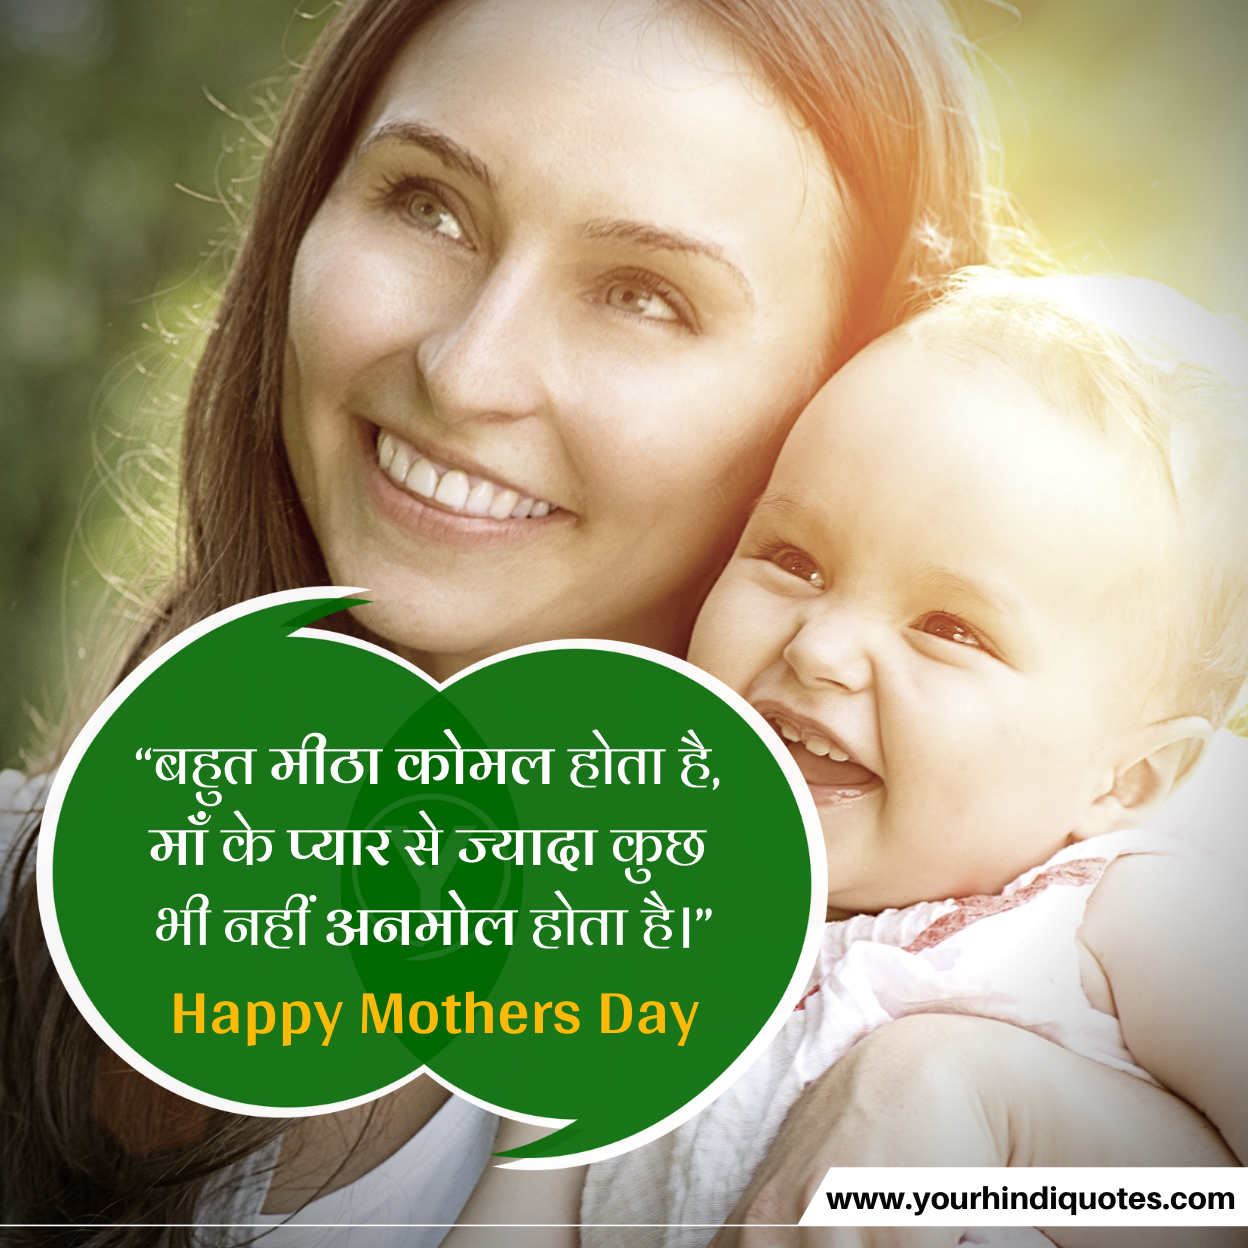 Mothers Day Quotes Hindi Image